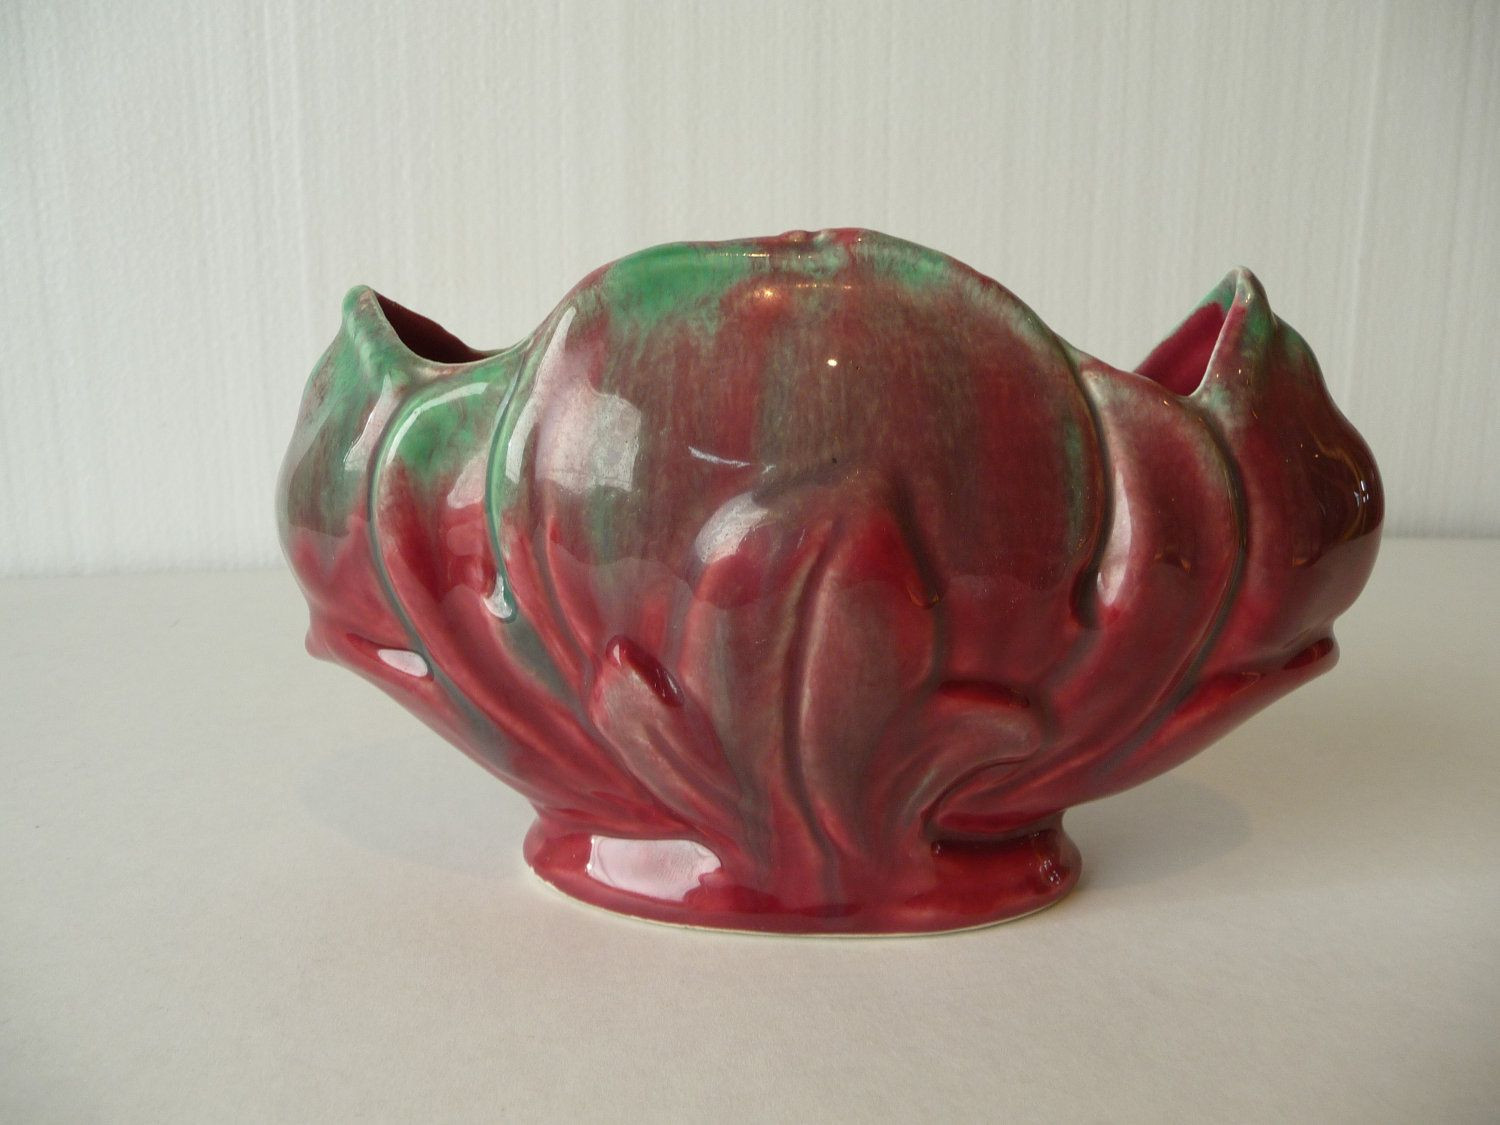 mccoy vases for sale of real mccoy lovely either way mc coy pinterest mccoy with vintage mccoy pottery vase planter in pink and green